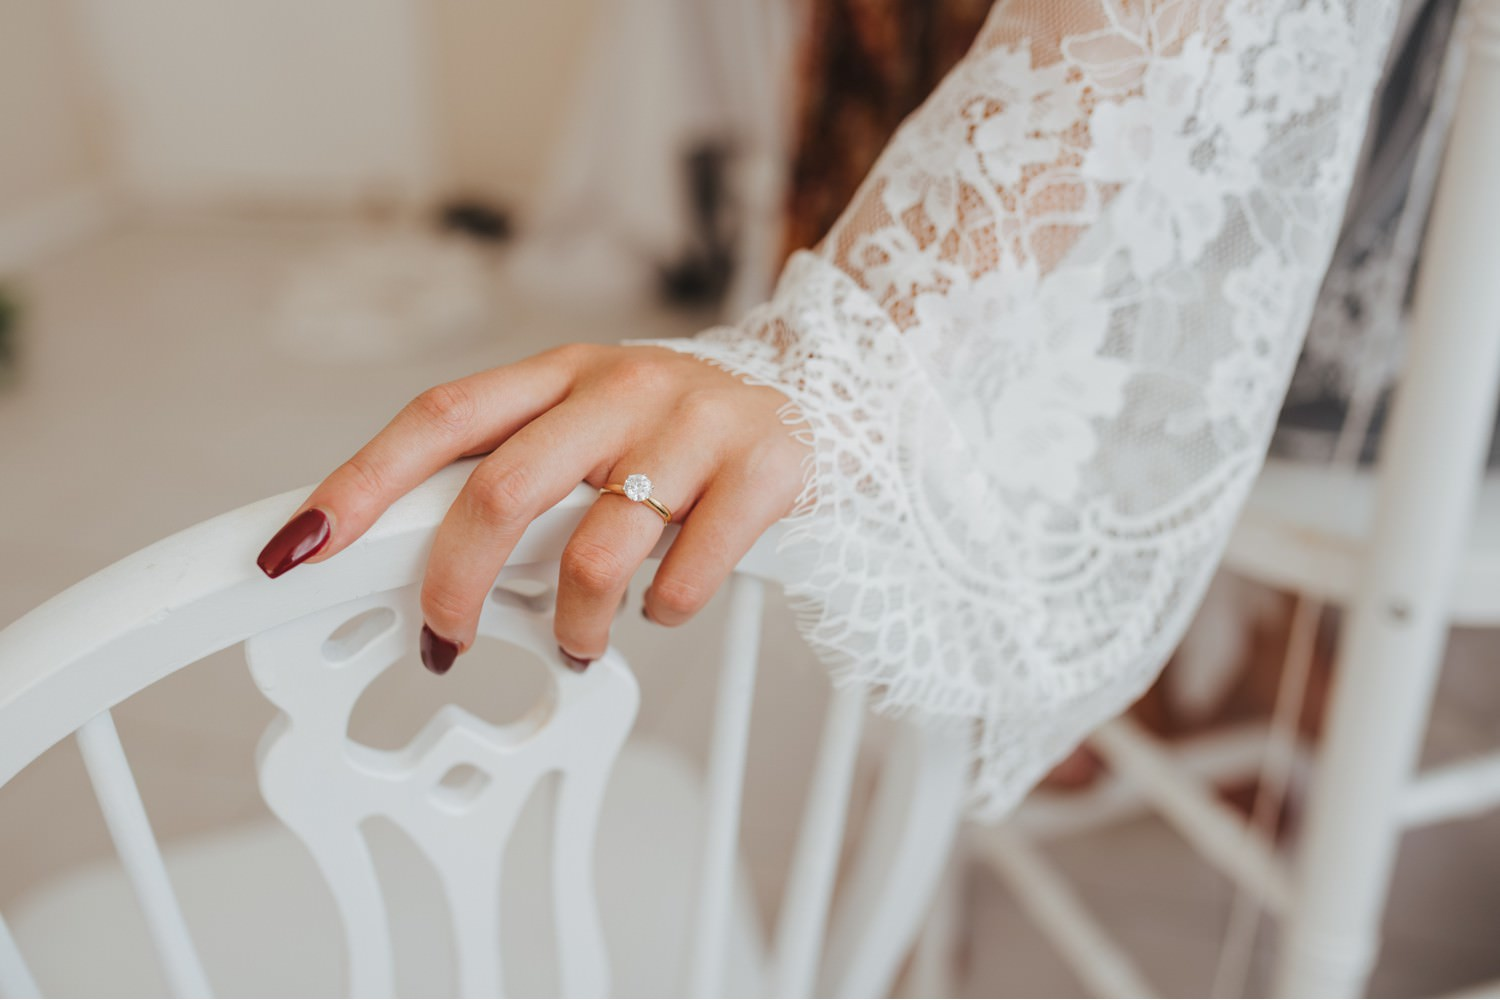 Brides hand with Engagement ring